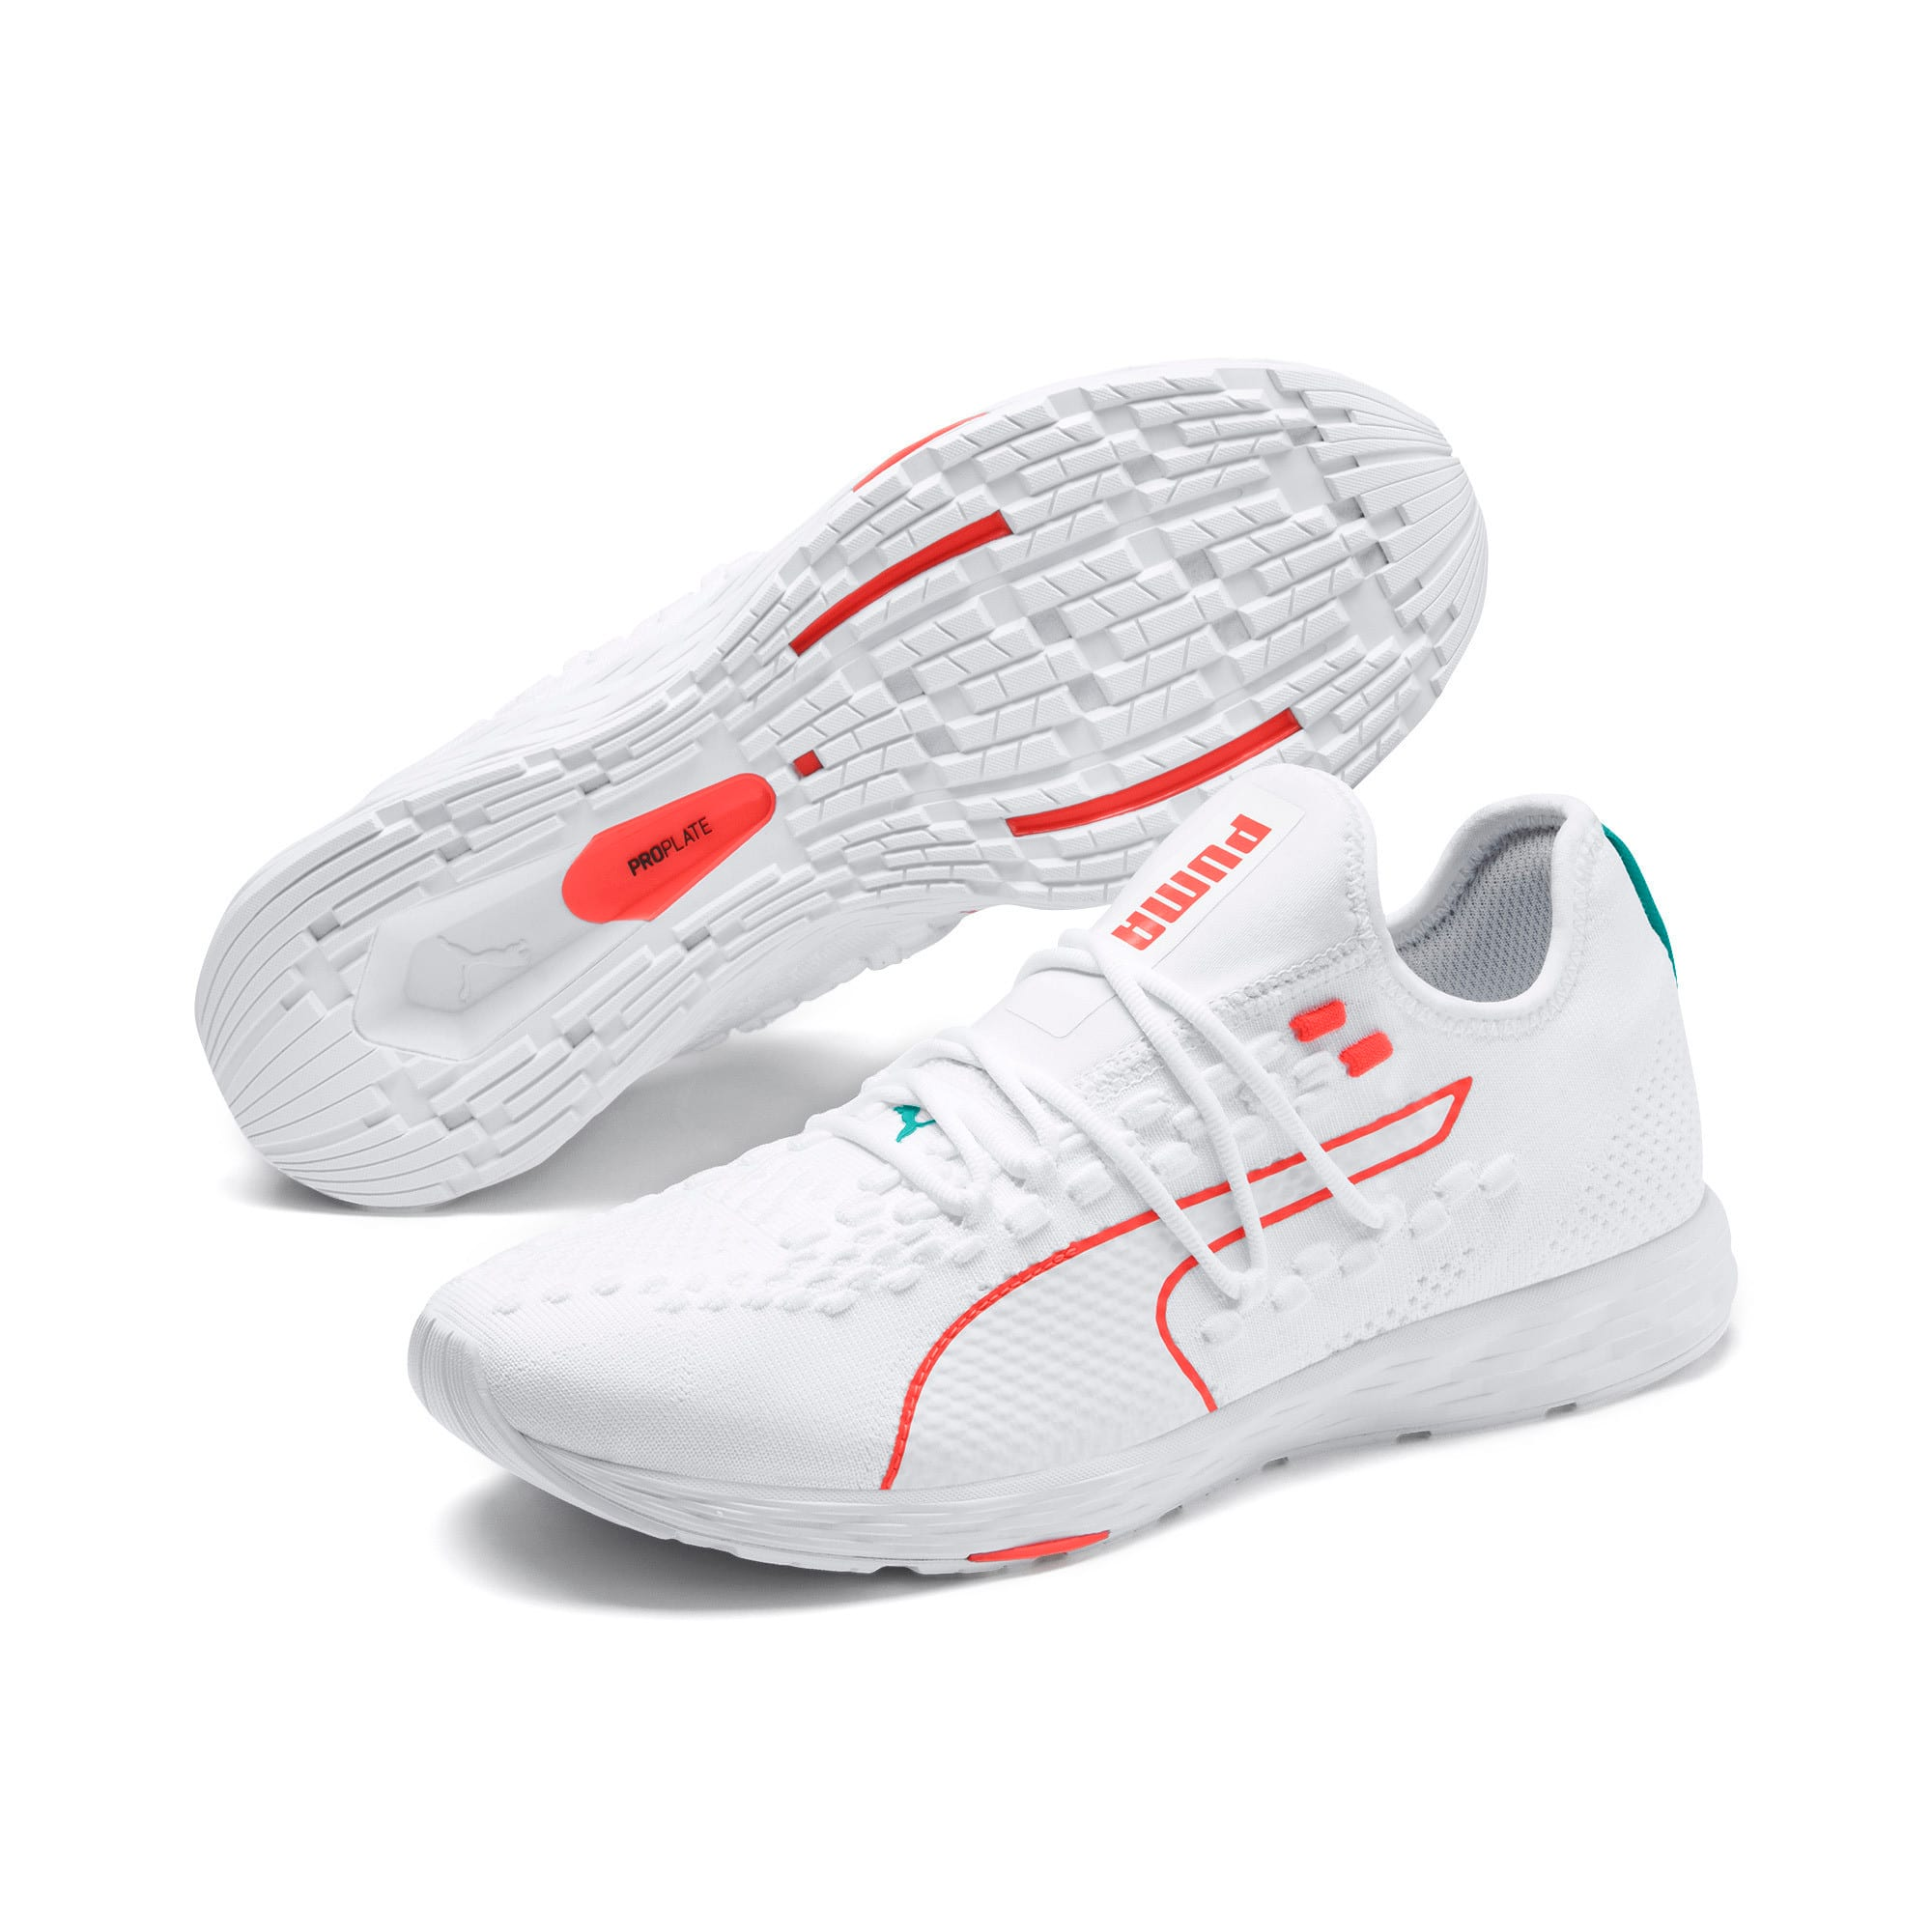 Thumbnail 3 of SPEED RACER Running Shoes, White-Nrgy Red-Turquoise, medium